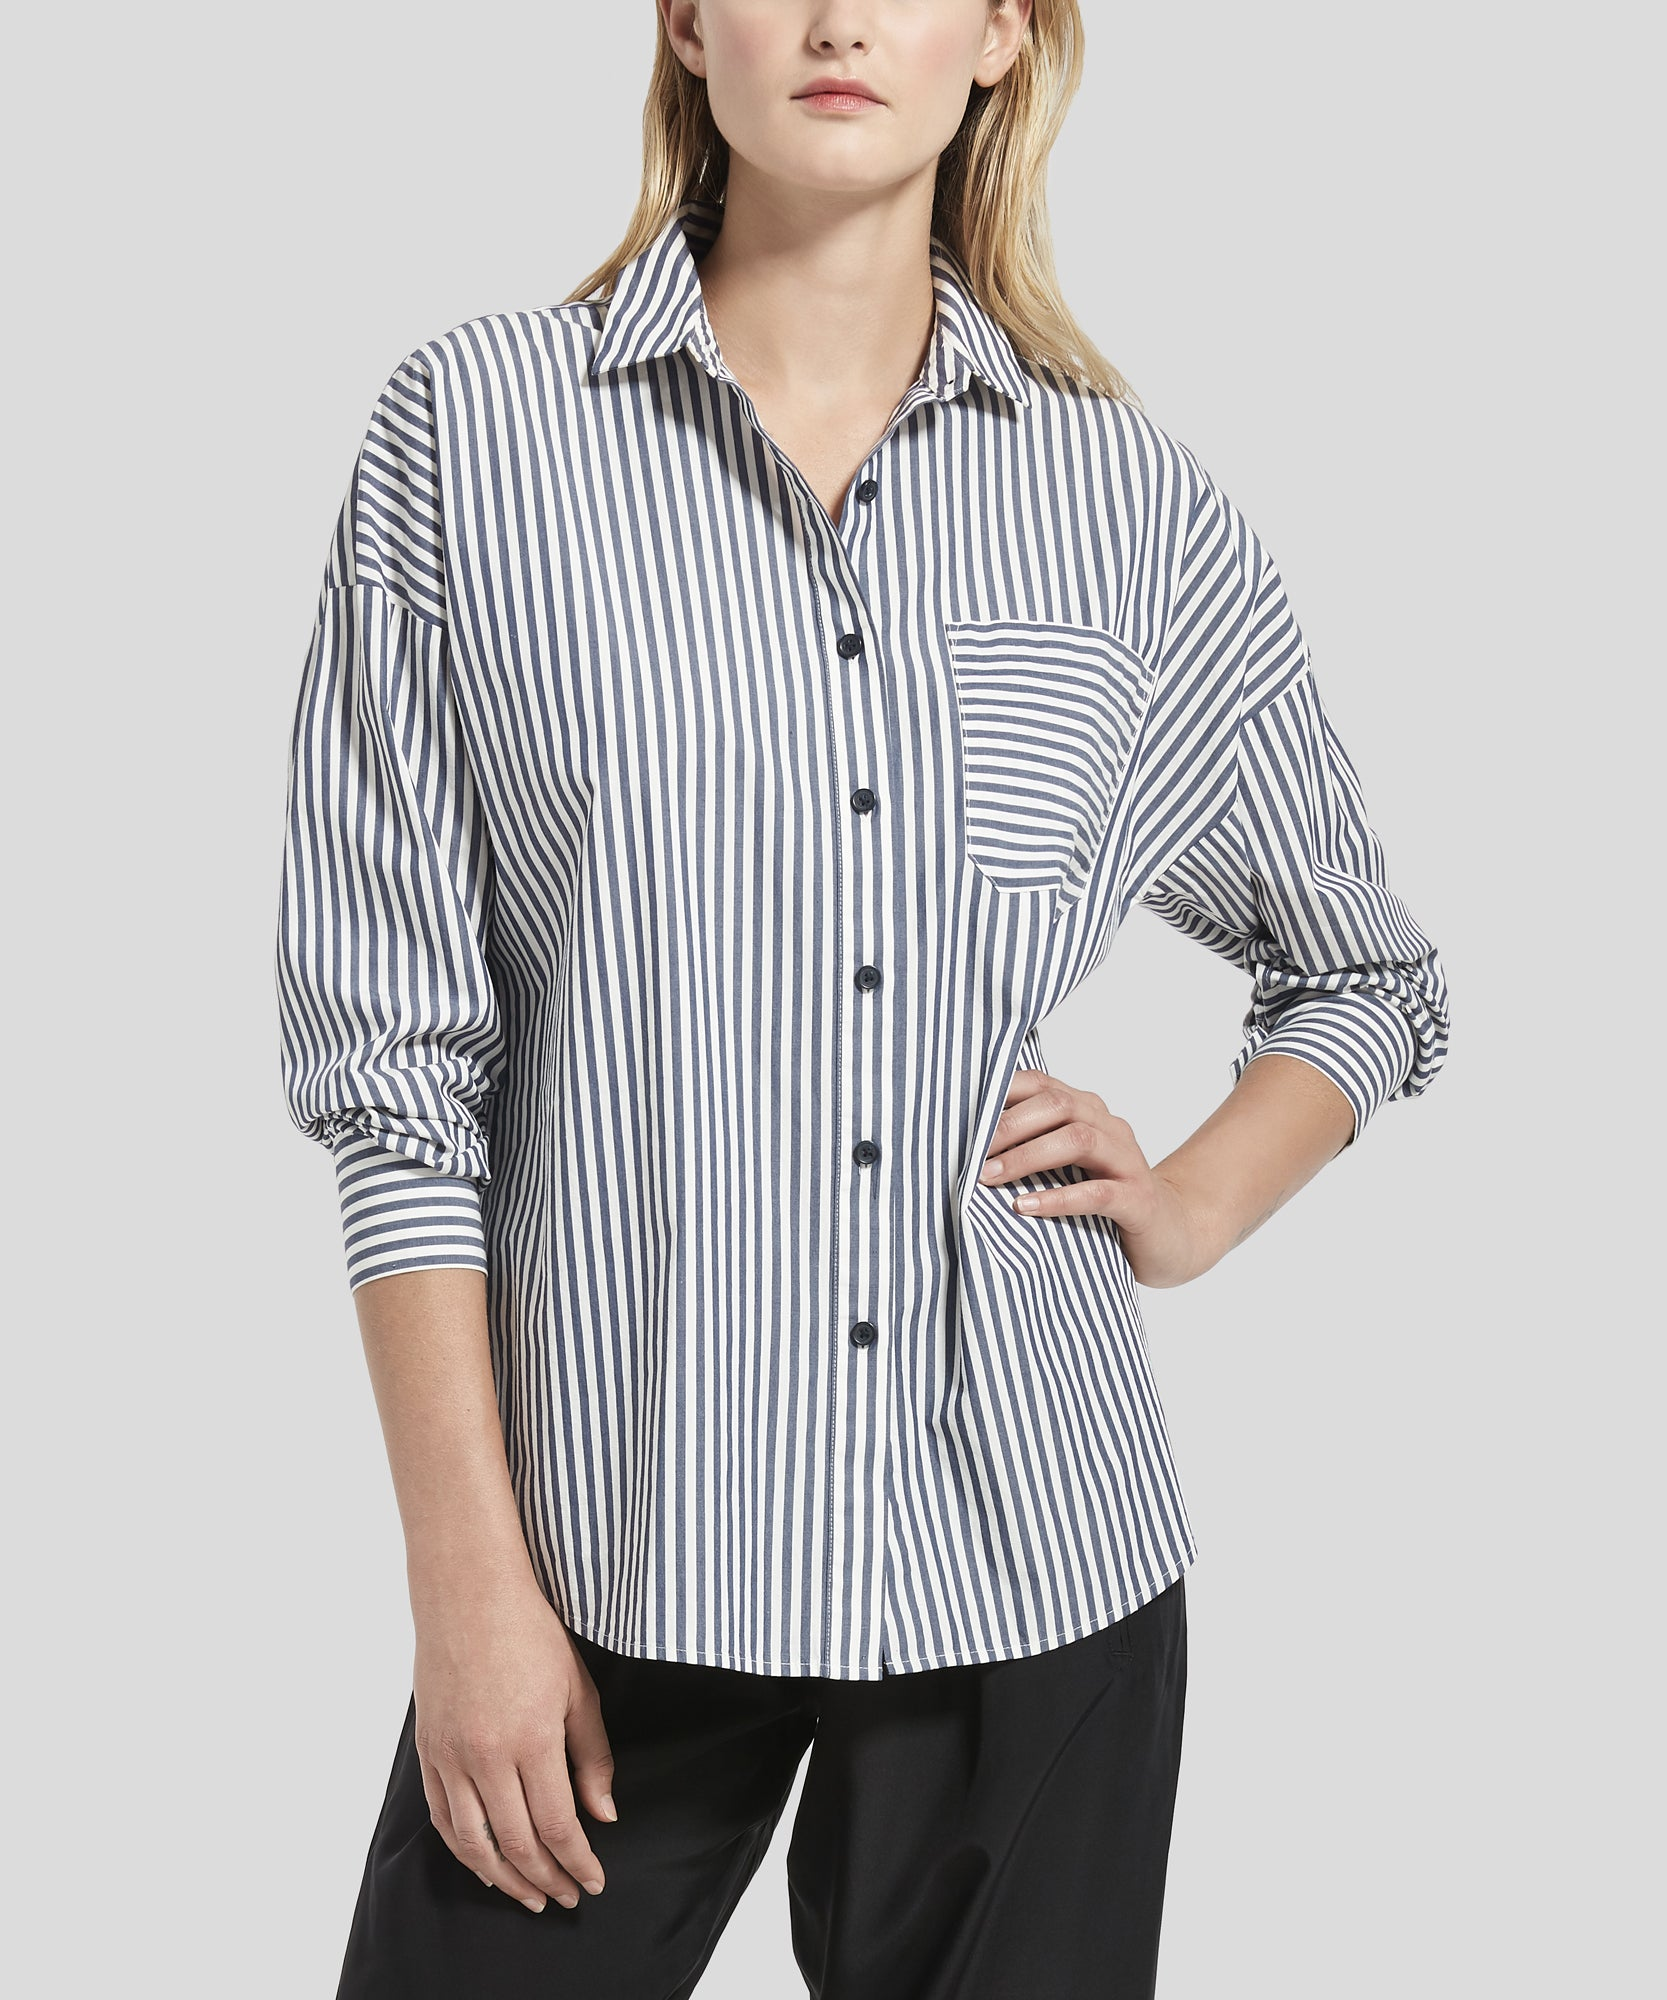 ATM Railroad Stripe Boyfriend Shirt